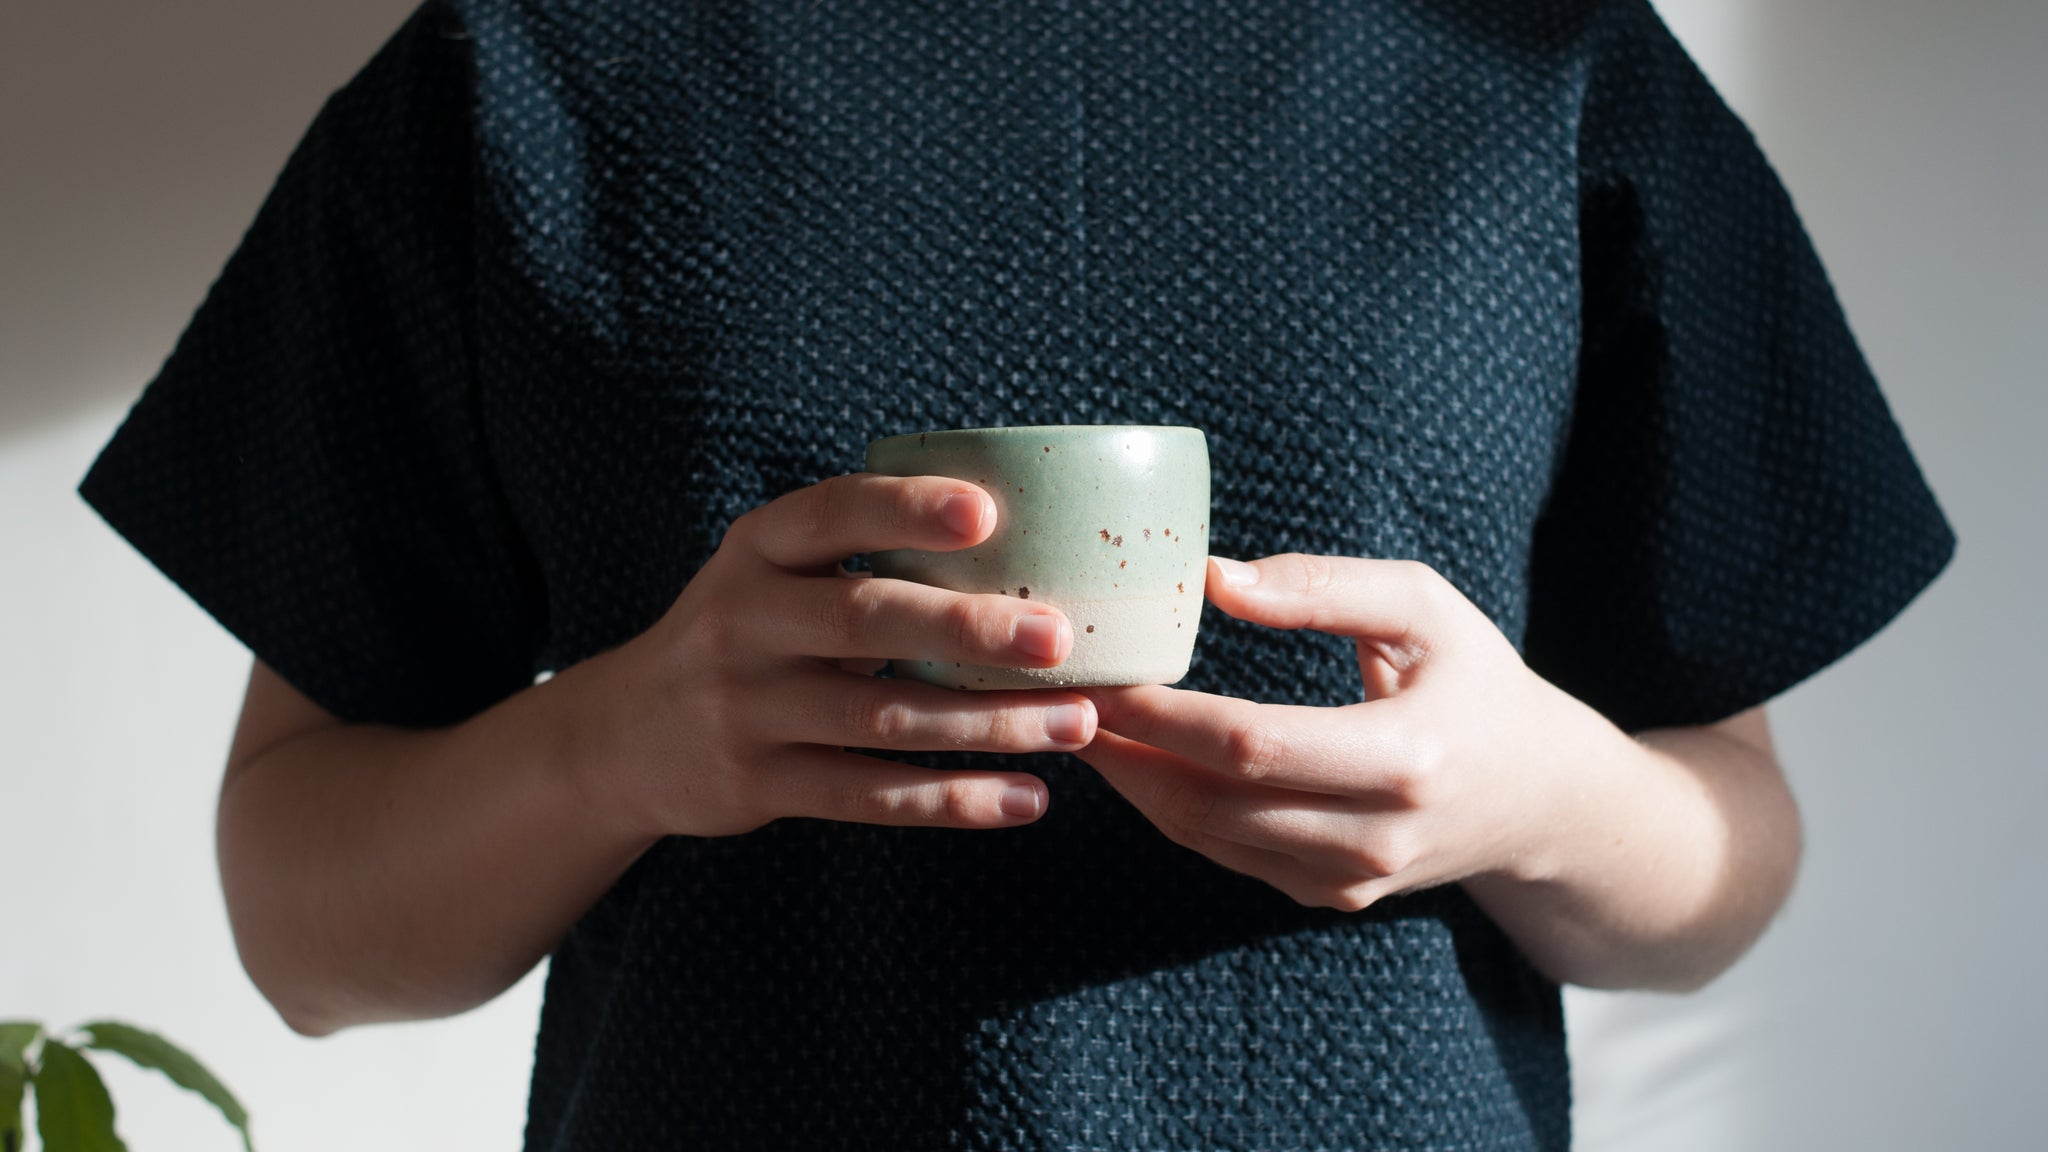 Viola holding a Celadon and Speckle Tea Bowl Dor and Tan